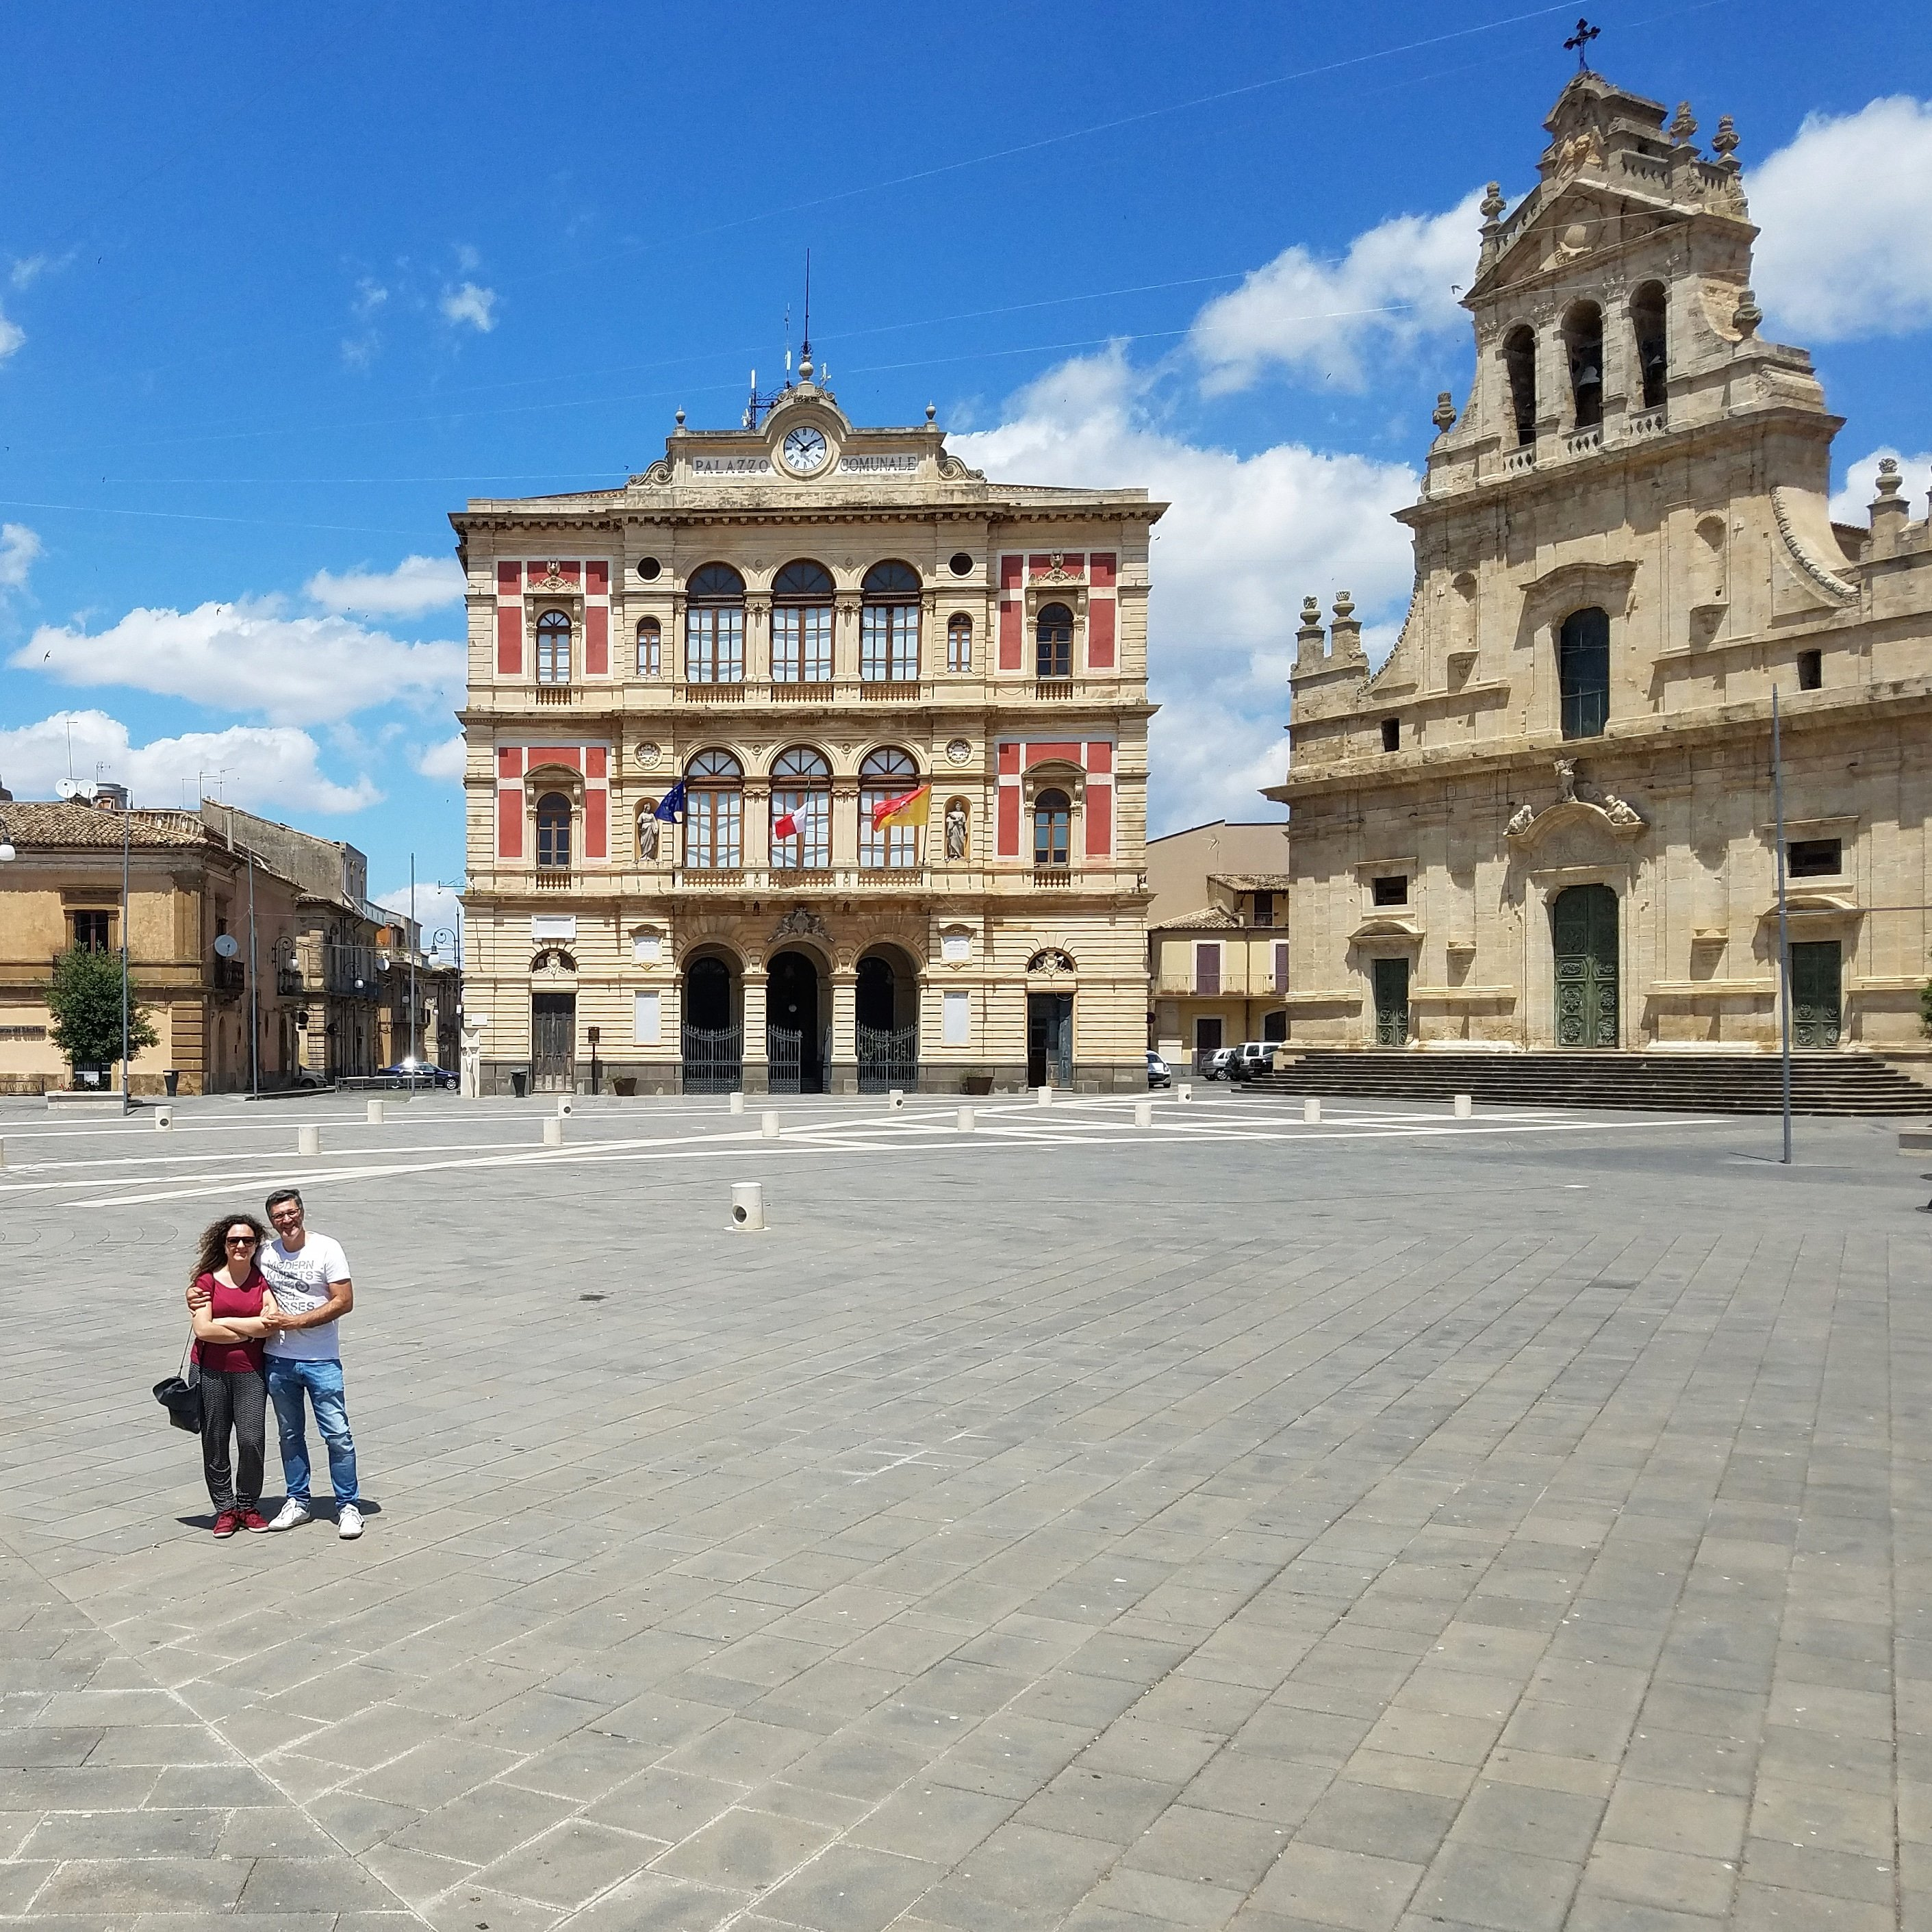 52 Reasons to Love Sicily   #32. Strolls Through Graceful Piazzas